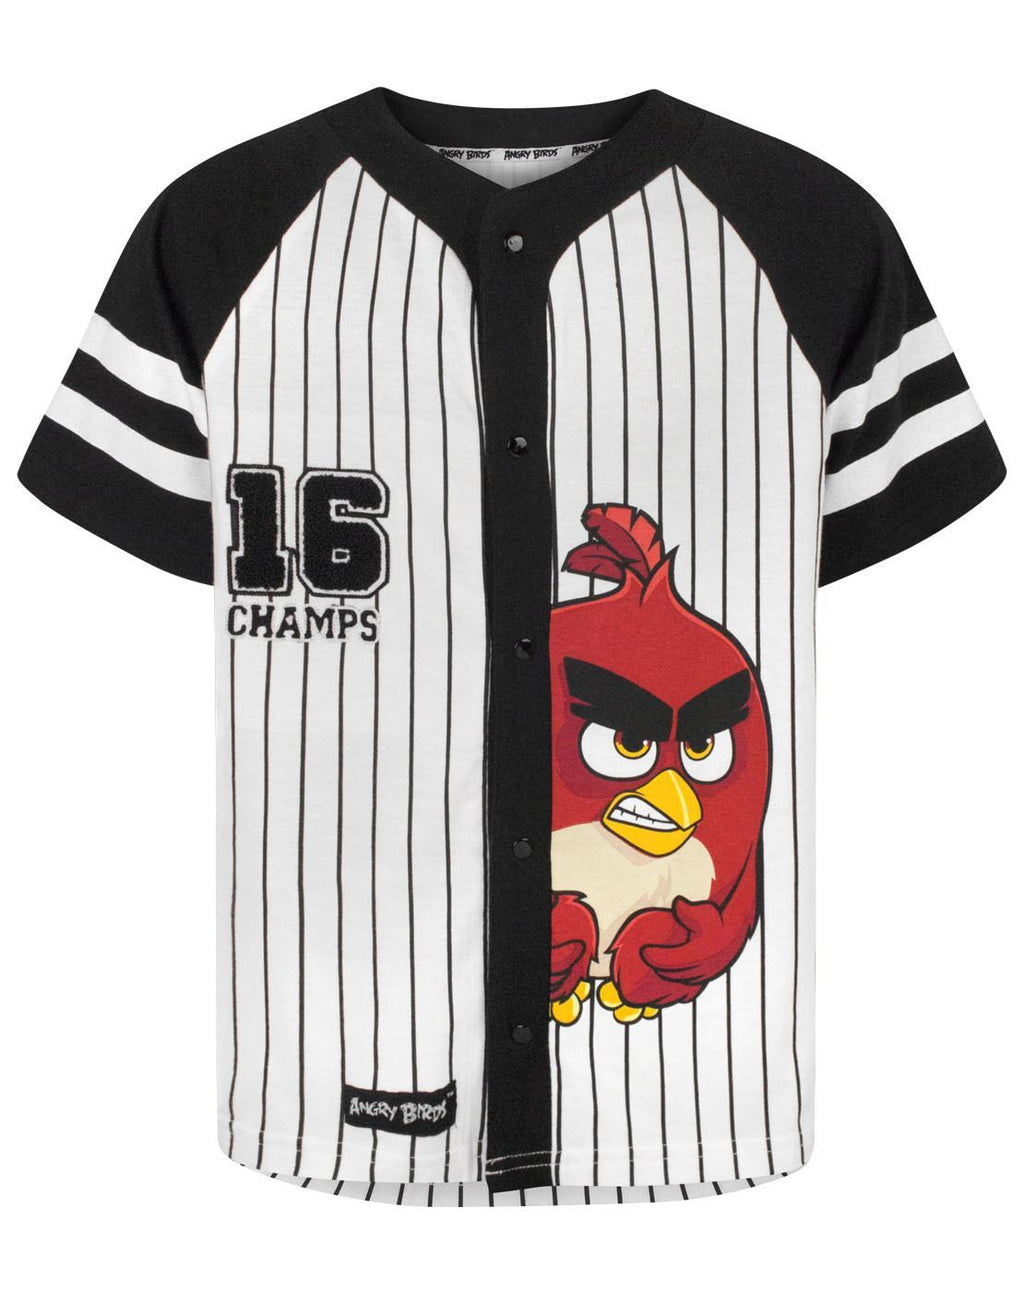 Angry Birds Champs Boy's Jersey